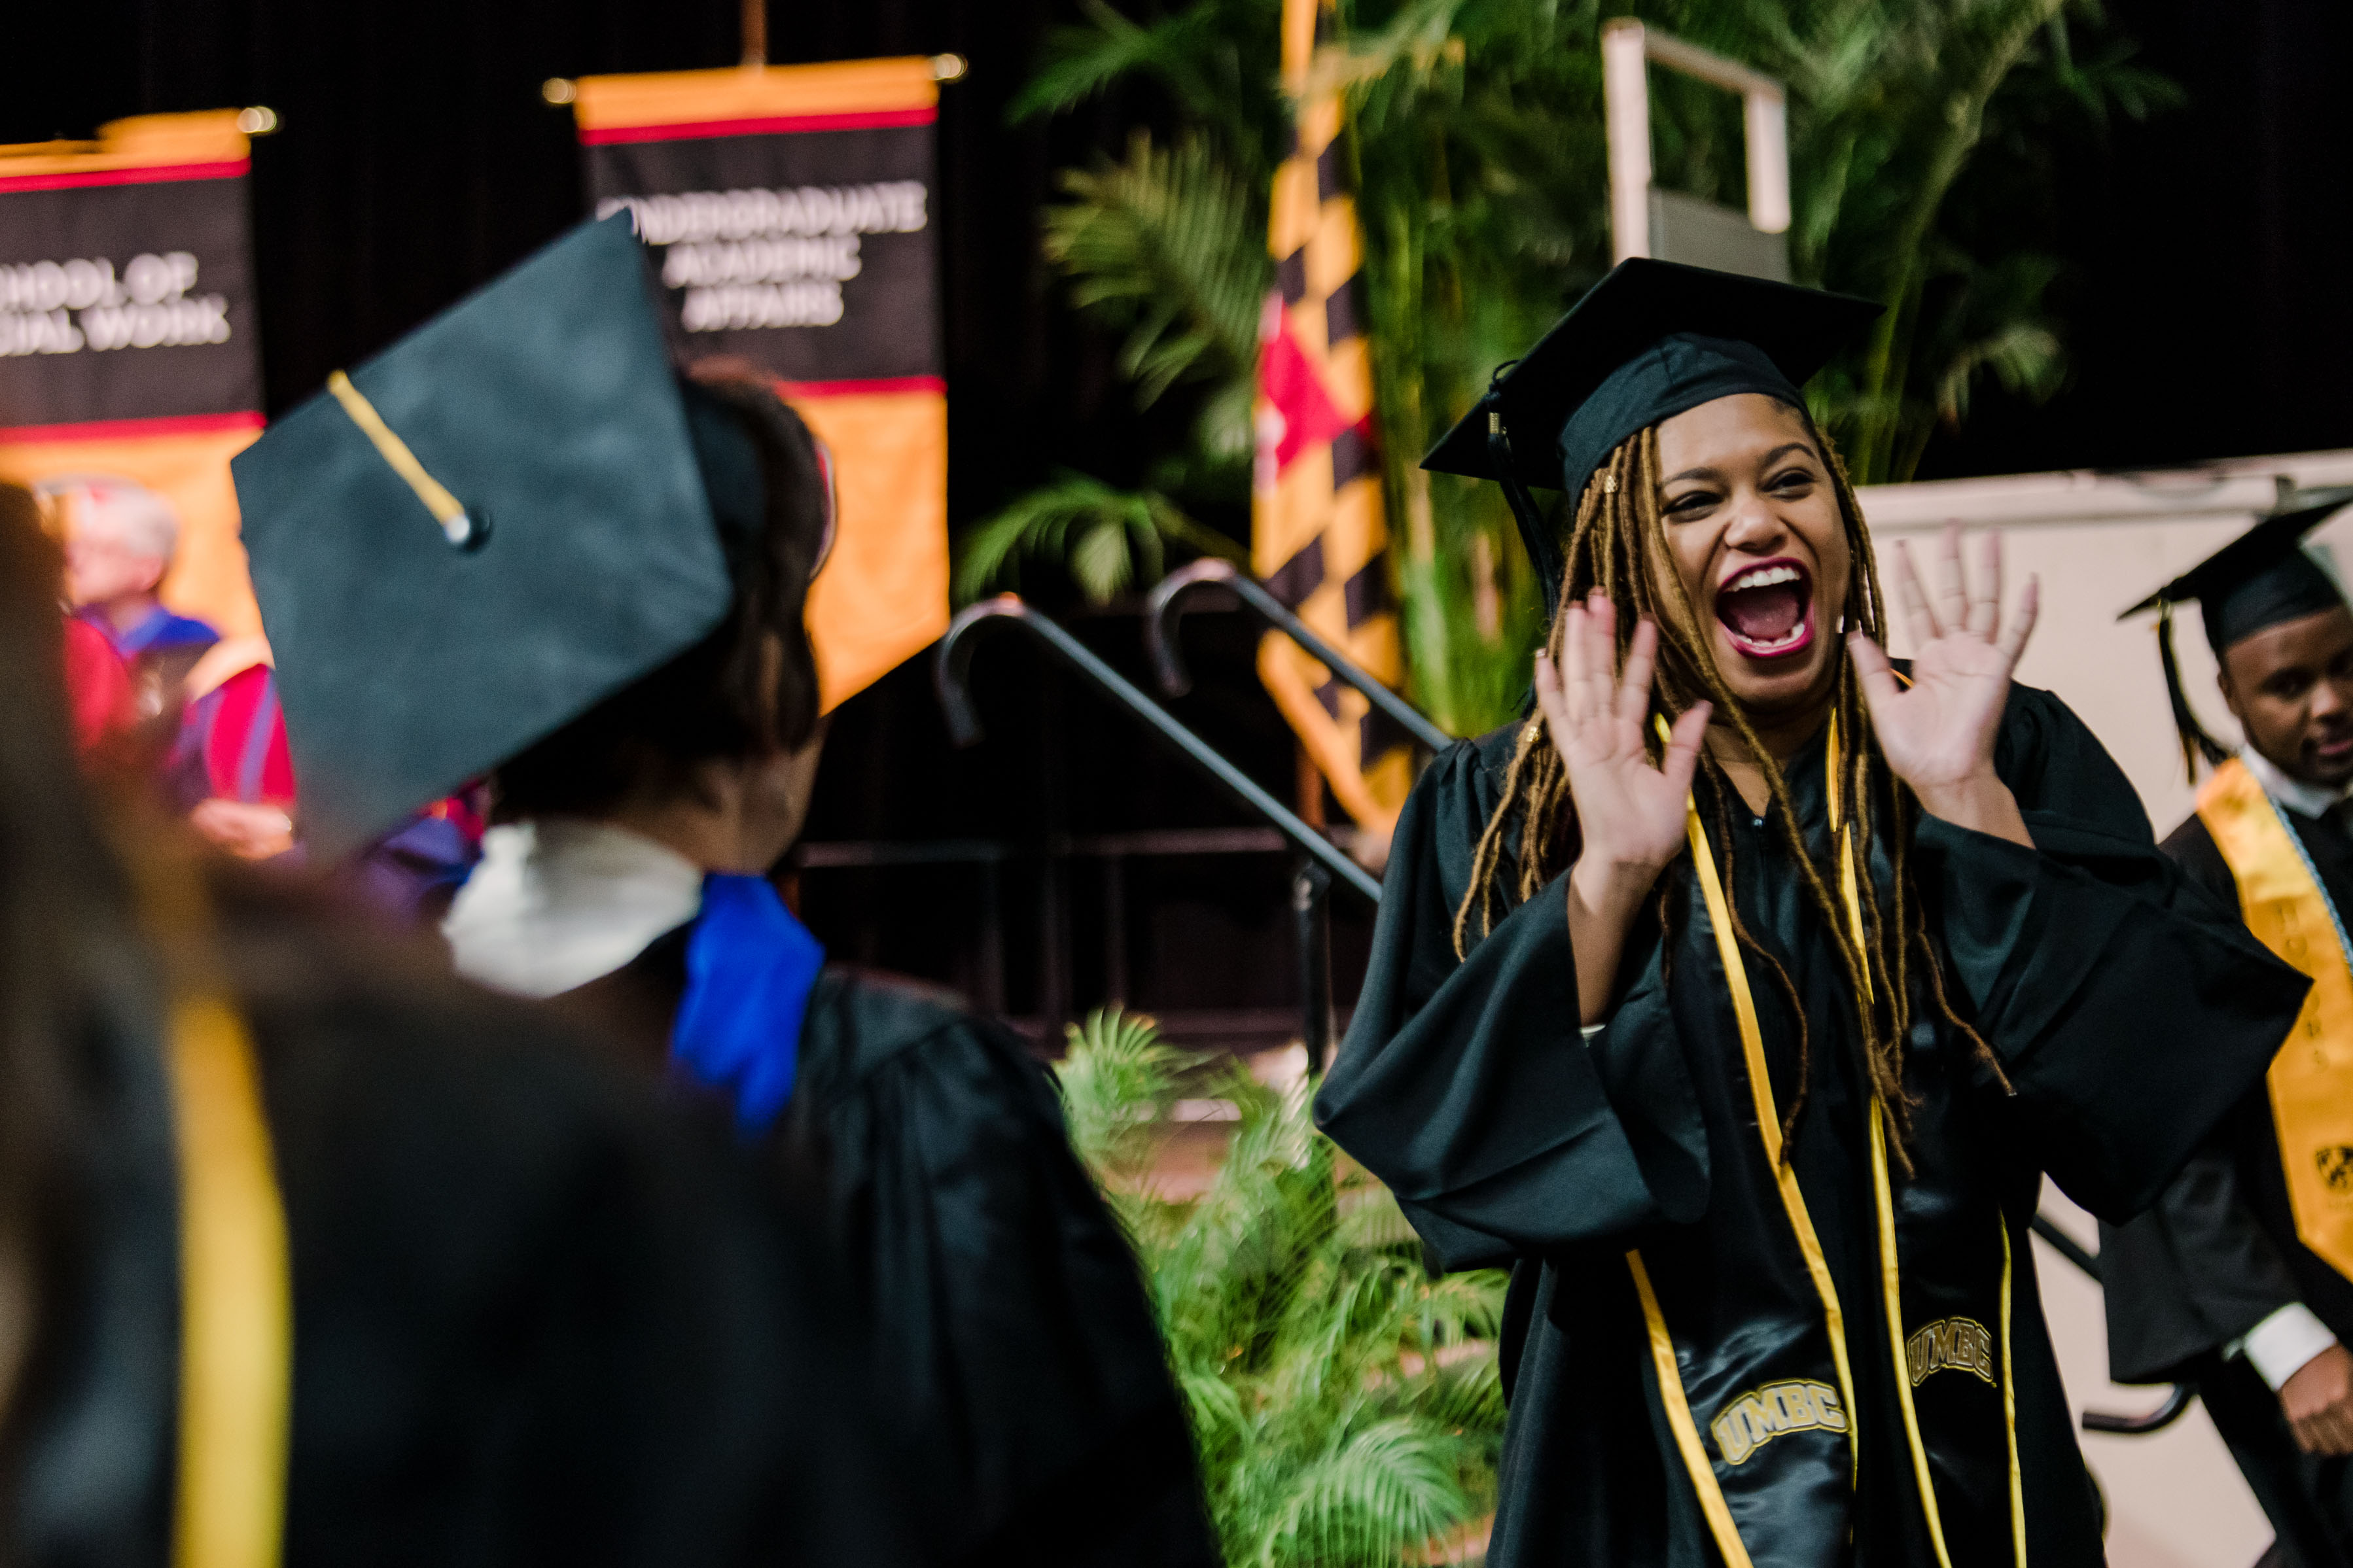 woman celebrates in graduation robes